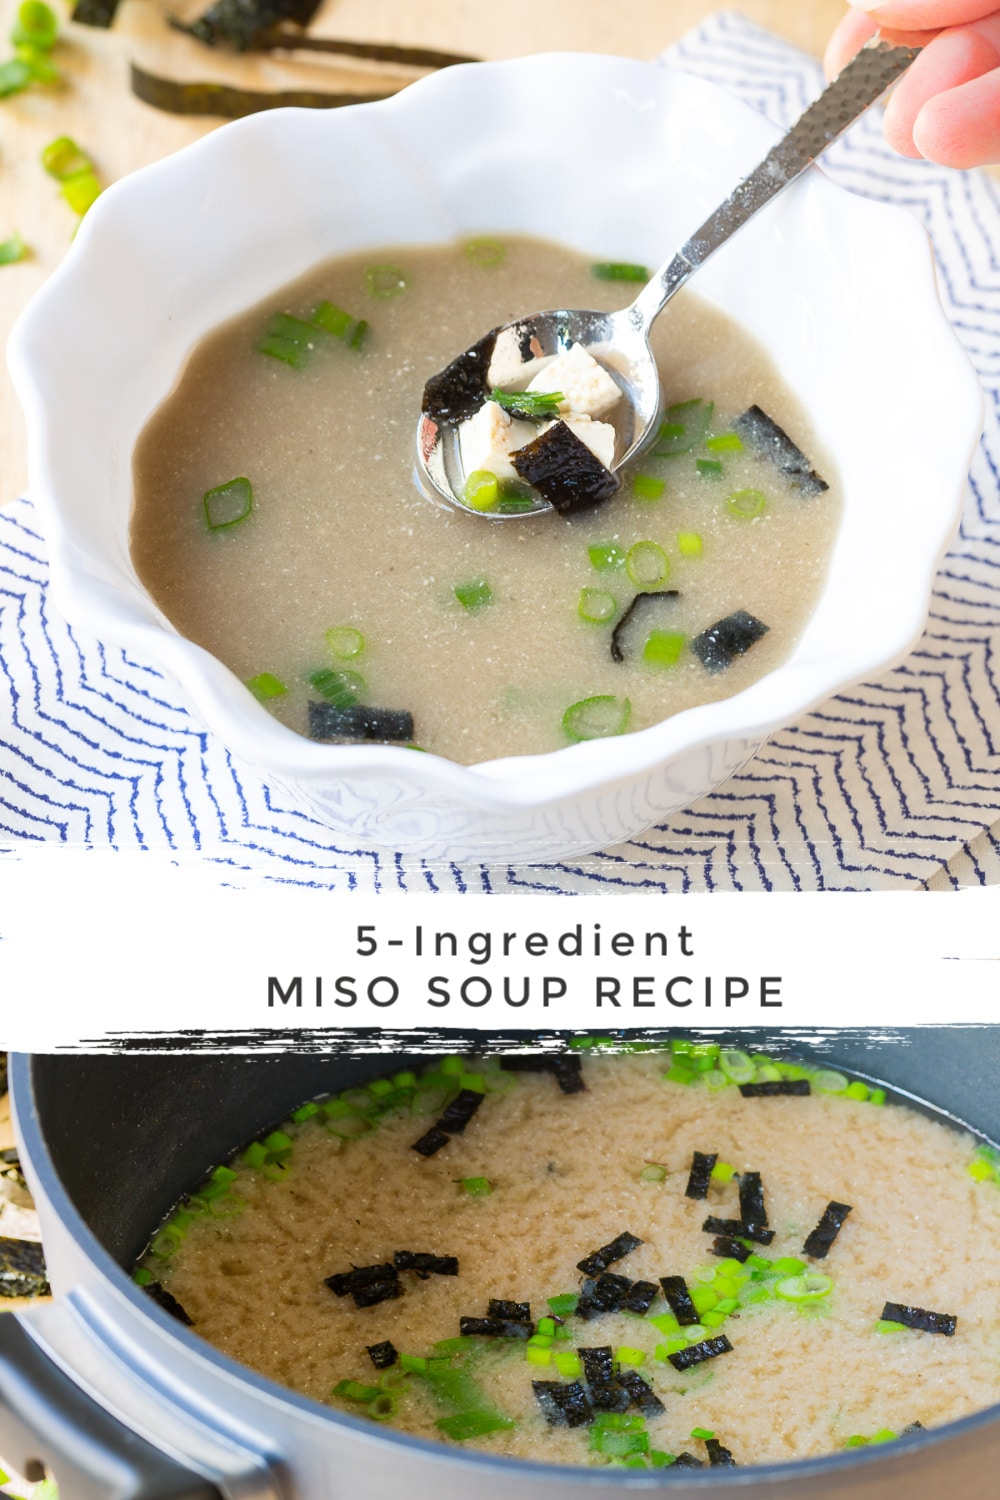 Classic Miso Soup Recipe in 5 Minutes! #ASpicyPerspective #healthy #vegan #vegetarian #miso #soup